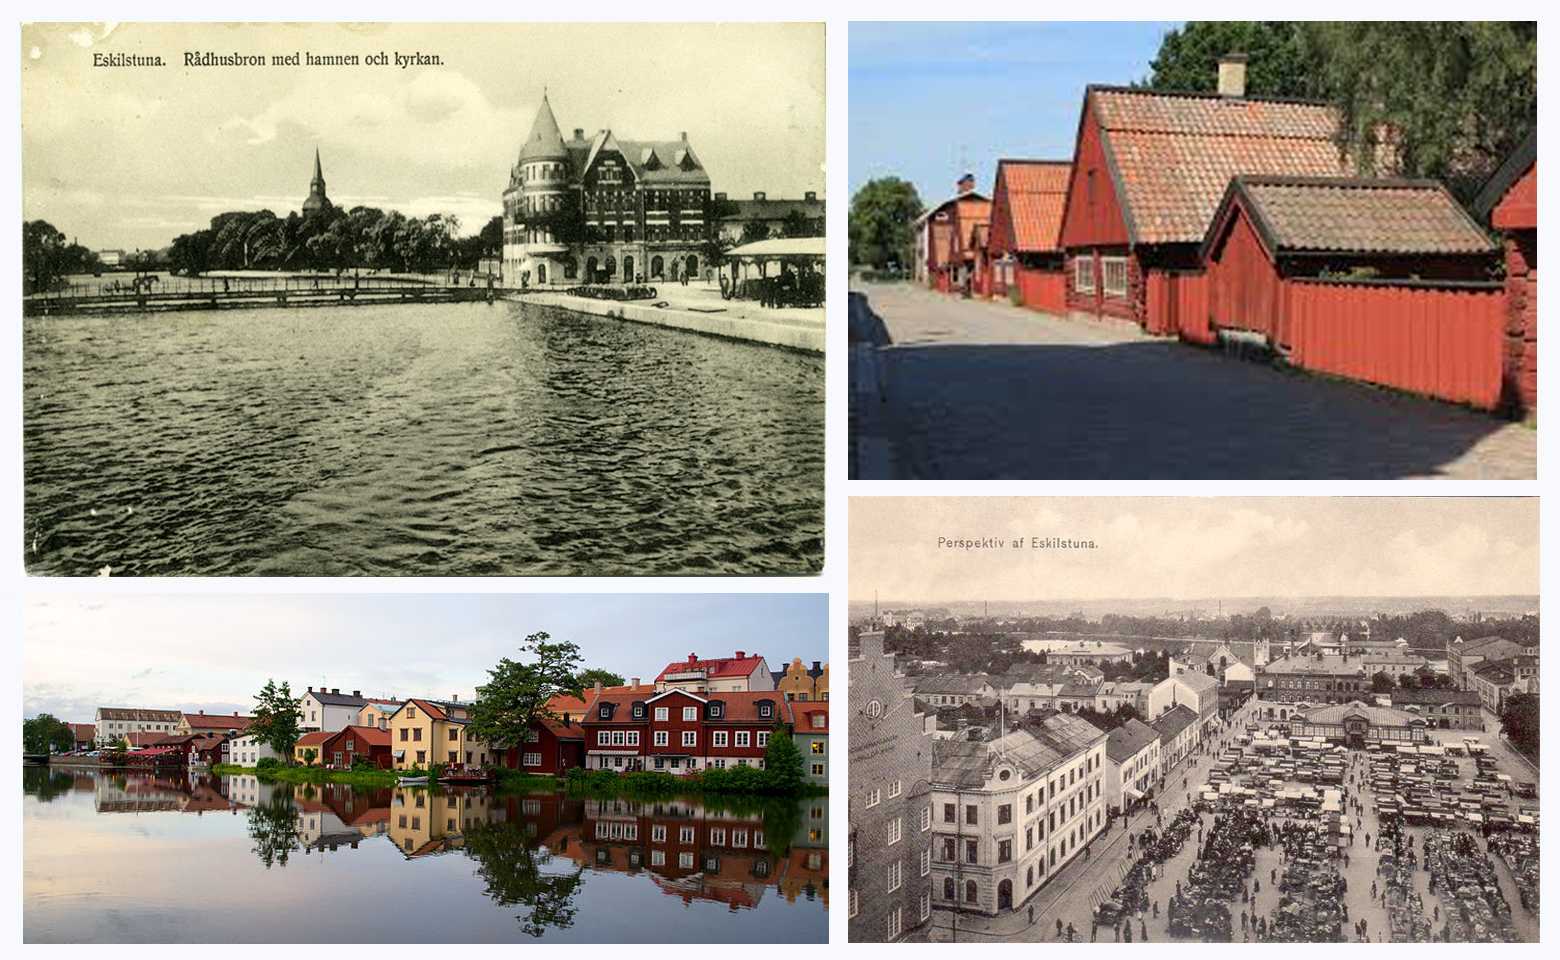 Eskilstuna, Sweden must have charmed Elsa at first, though she grew homesick for her family and the energy of a big city.  Clockwise from top left:  the small   Eskilstunaån River; Rademacher Forges dating back to 1650's; 1920's postcard of Eskilstuna markets; and the oldest street in Eskilstuna today.